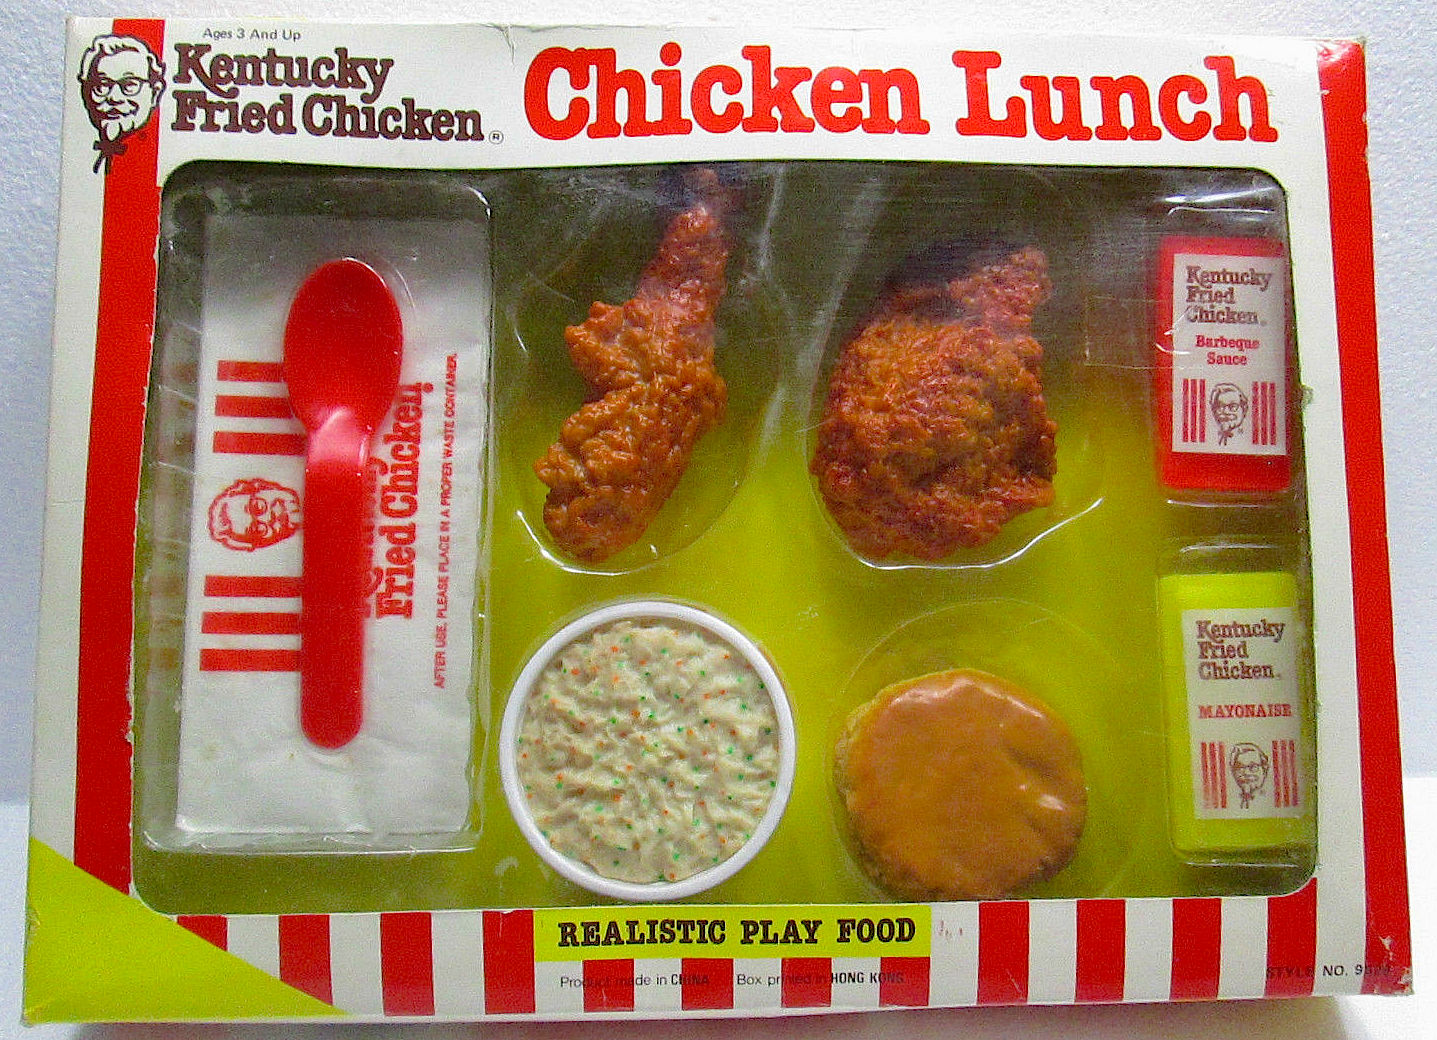 Kfc Toy Food : Kentucky fried chicken play set toys kfc plastic fun